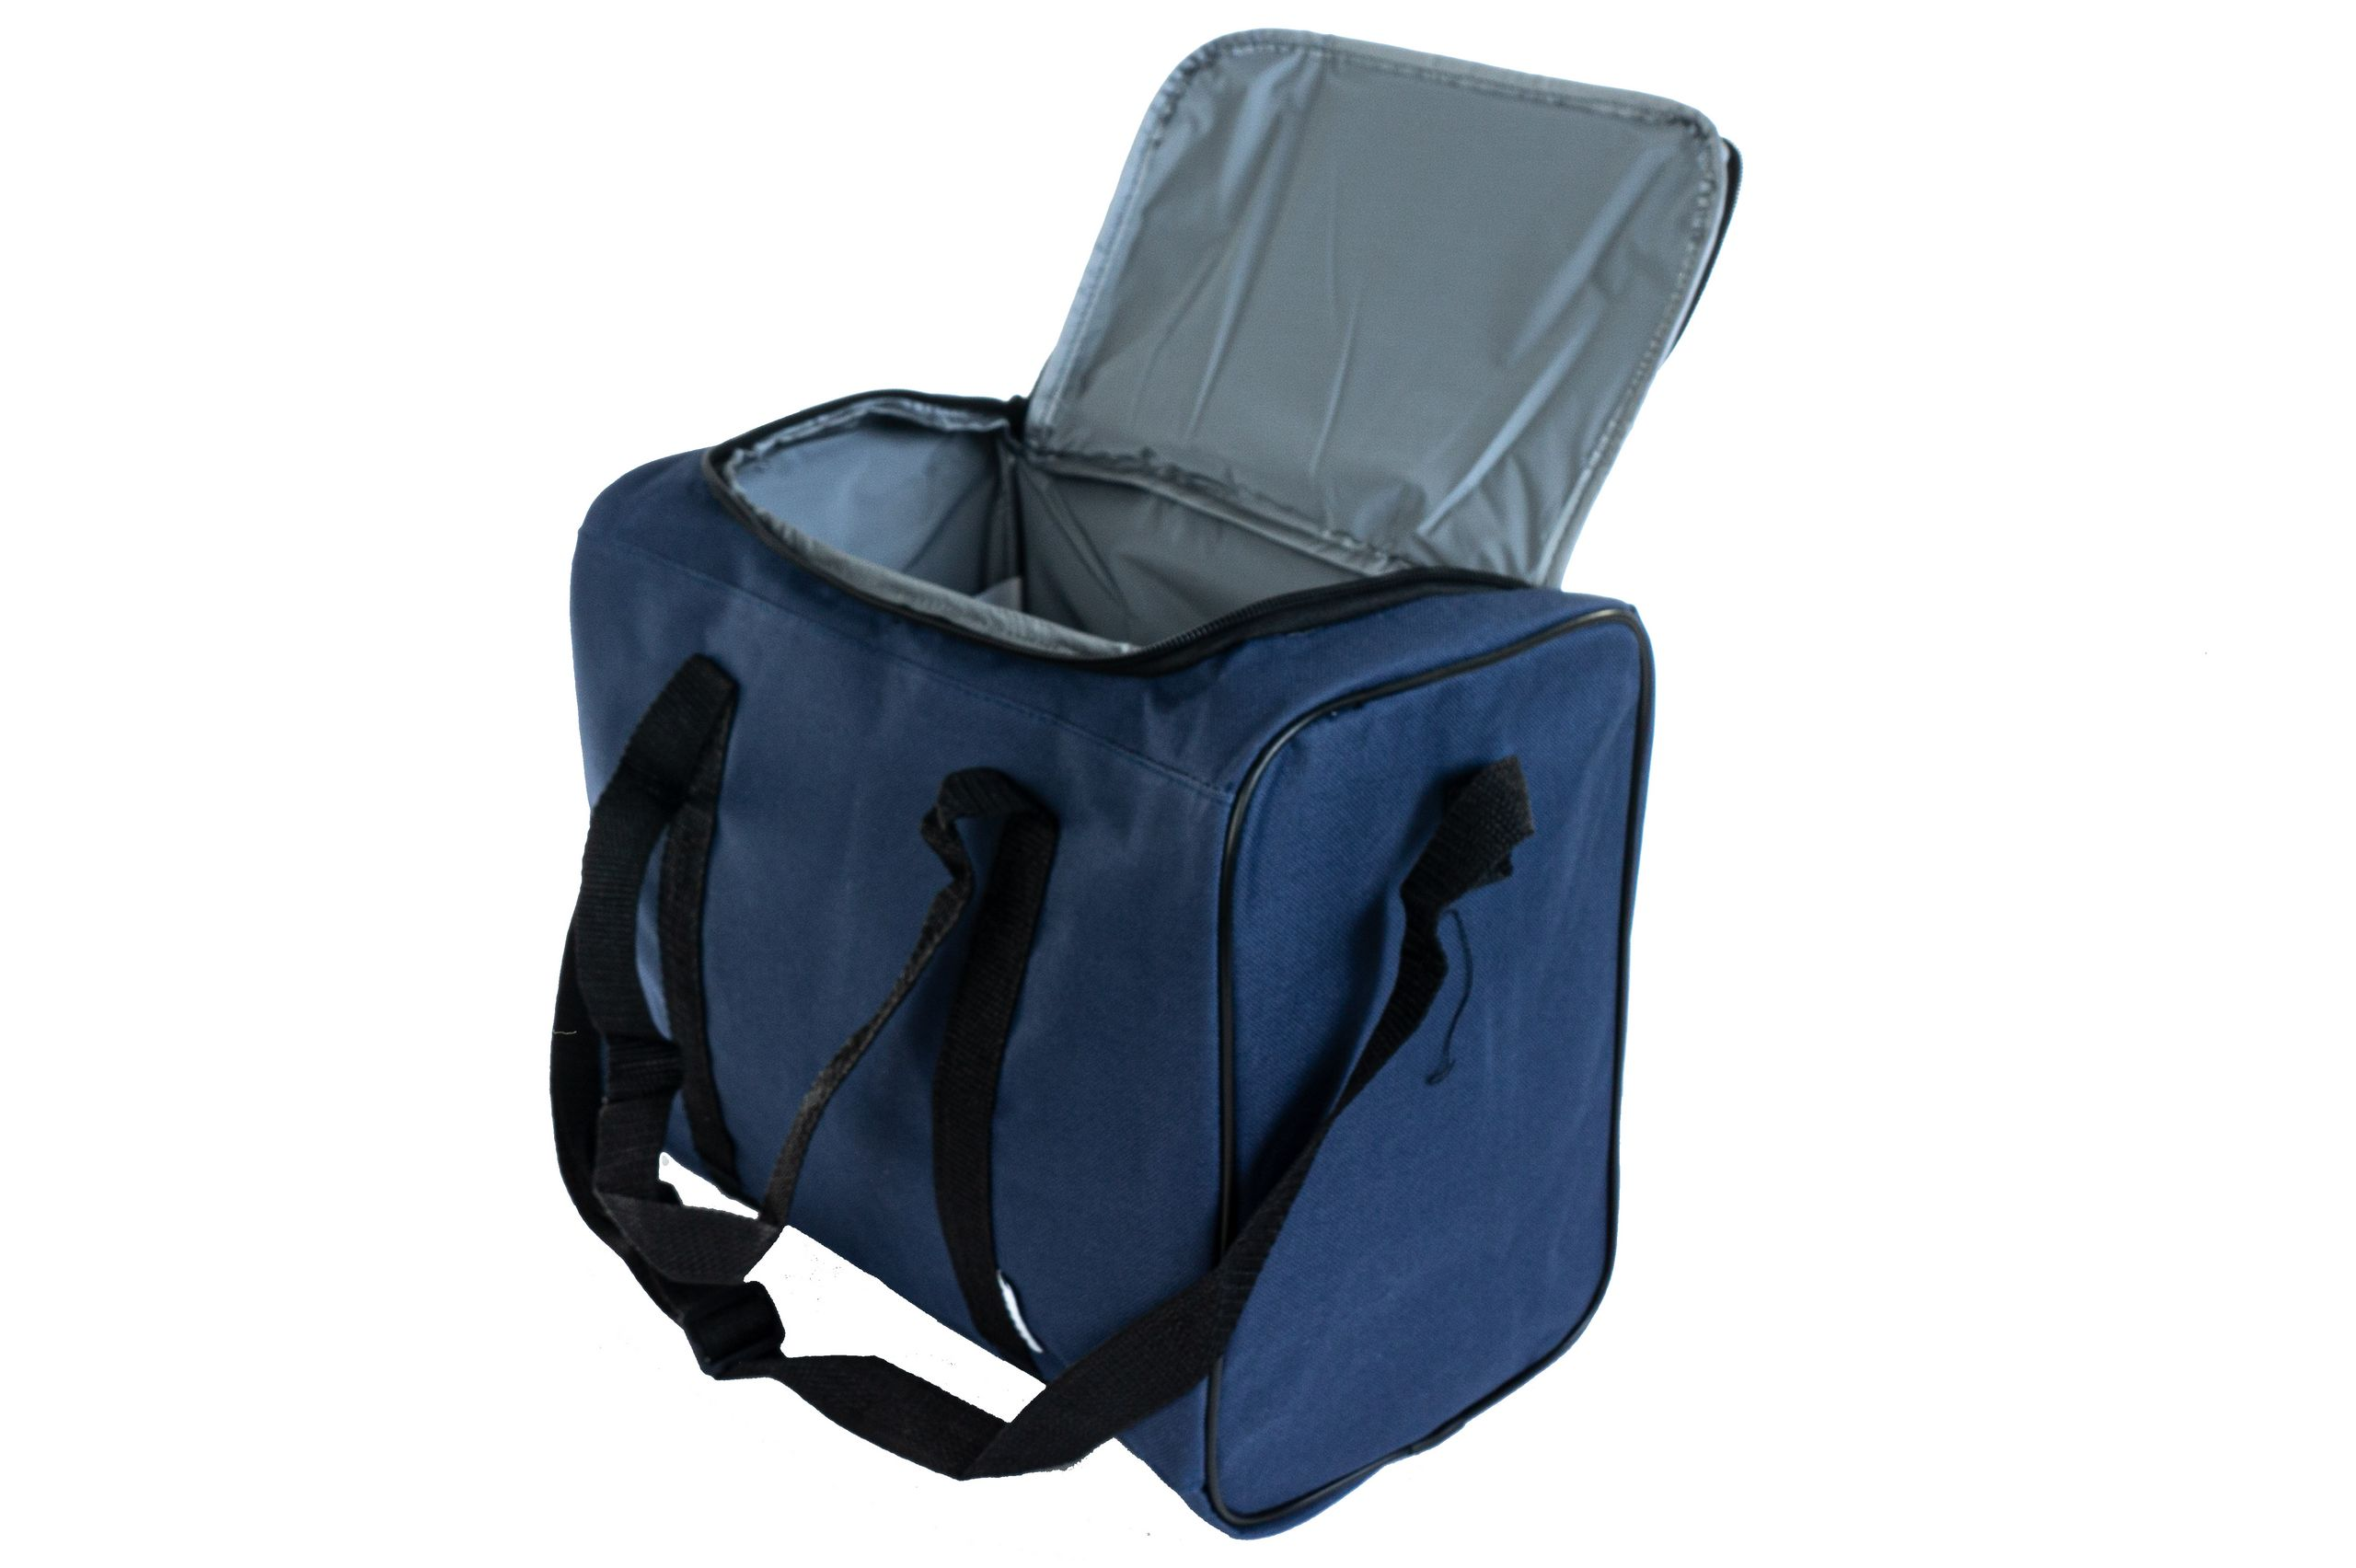 Tragbeutel f/ür Powerhoop Reifen Navy Blau Powerhoop Carrybag